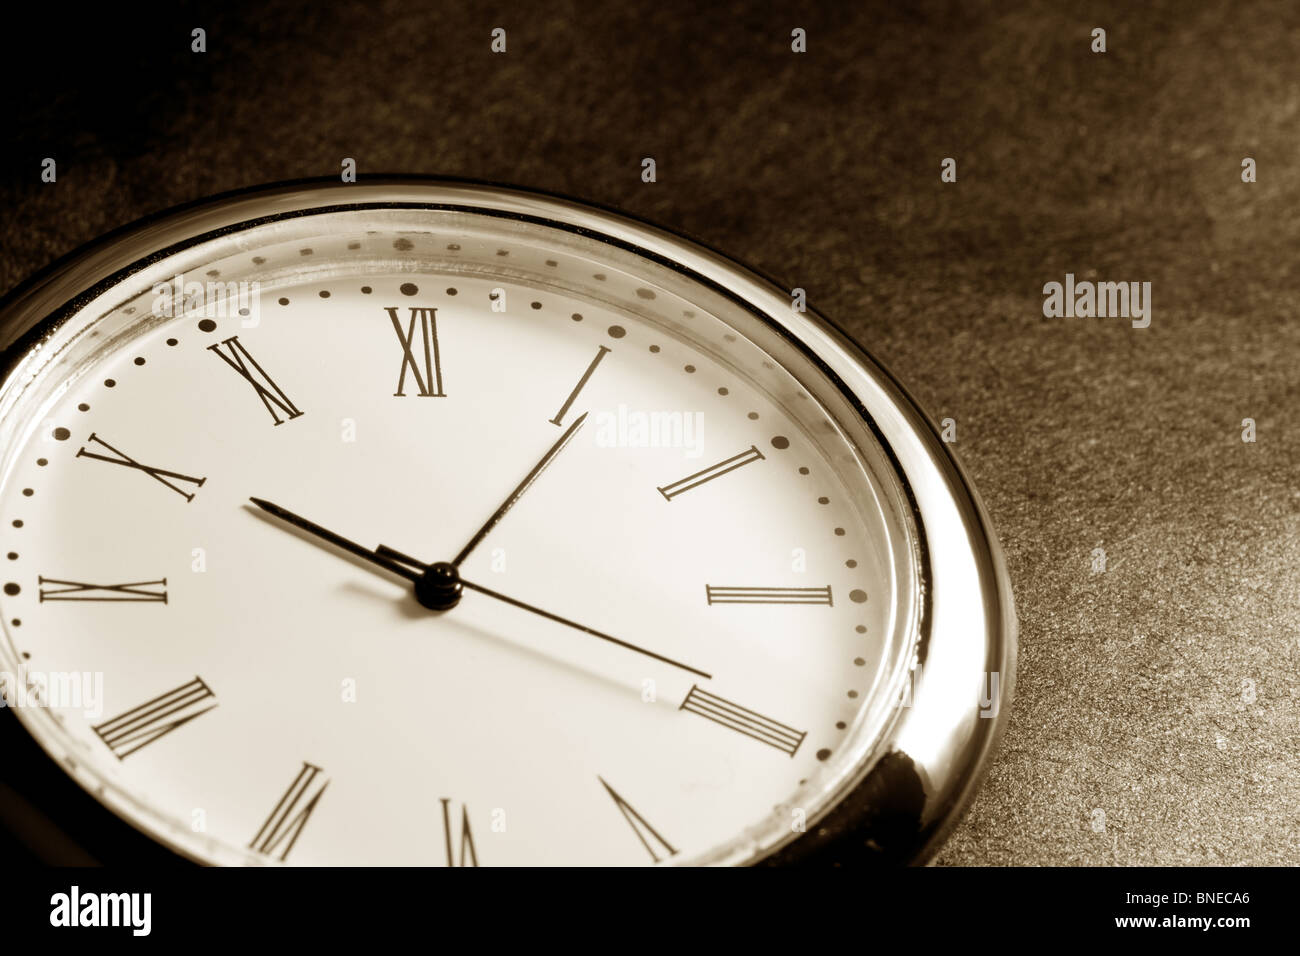 Clock close up with dark background - Stock Image